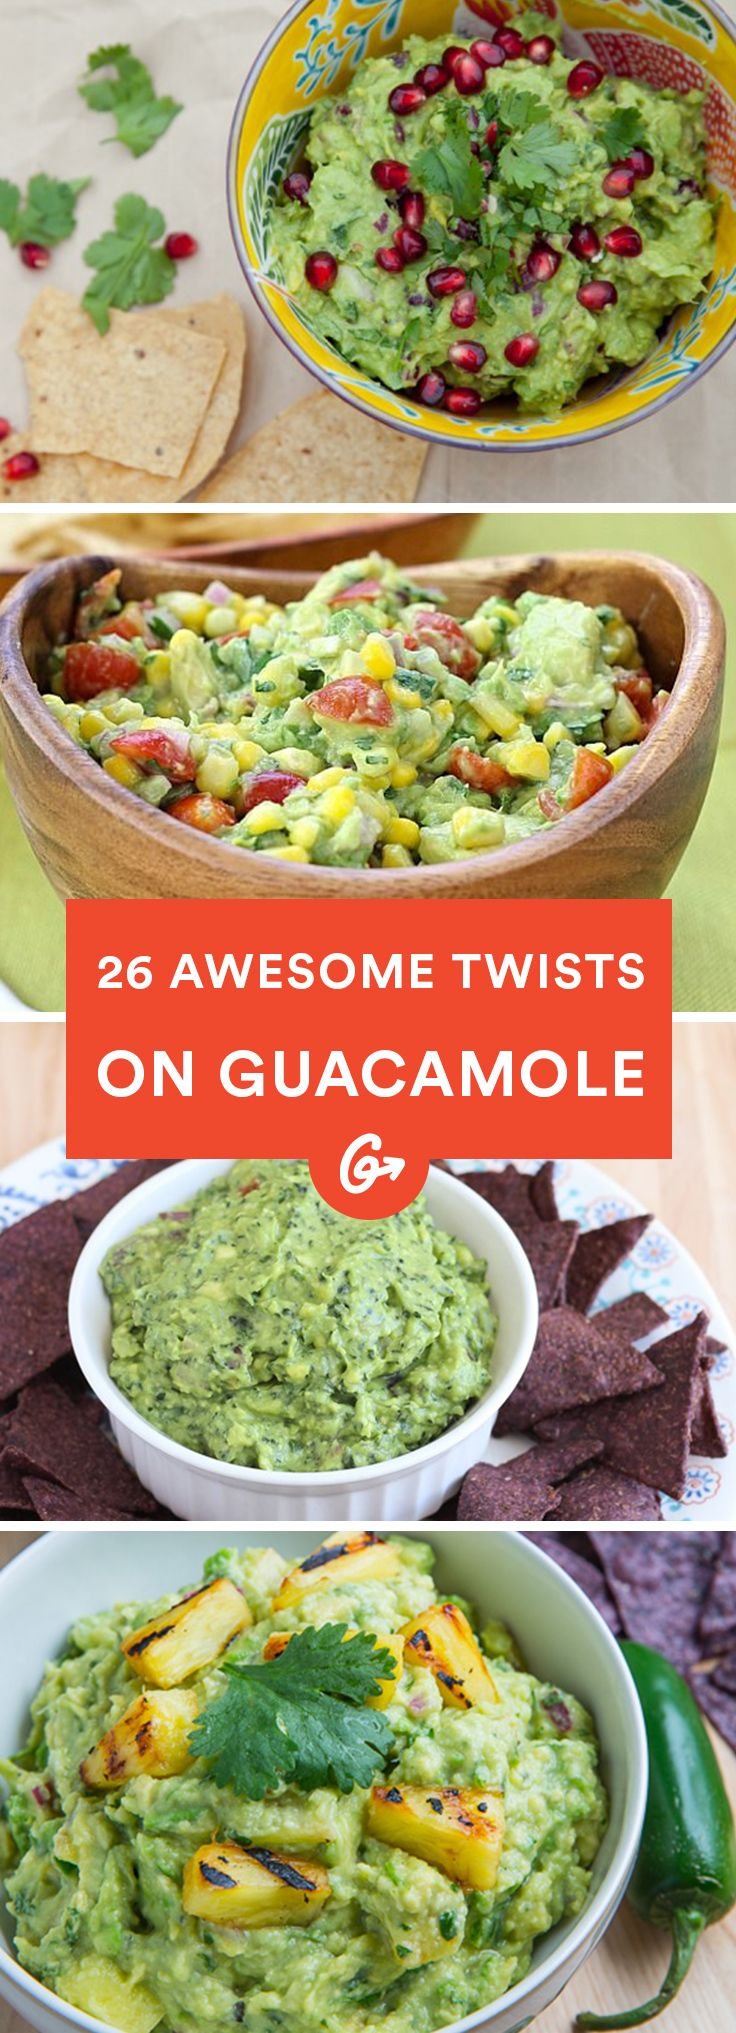 It hard to imagine making guacamole even more delicious. #guacamole #recipes http://greatist.com/health/creative-healthy-guacamole-recipes